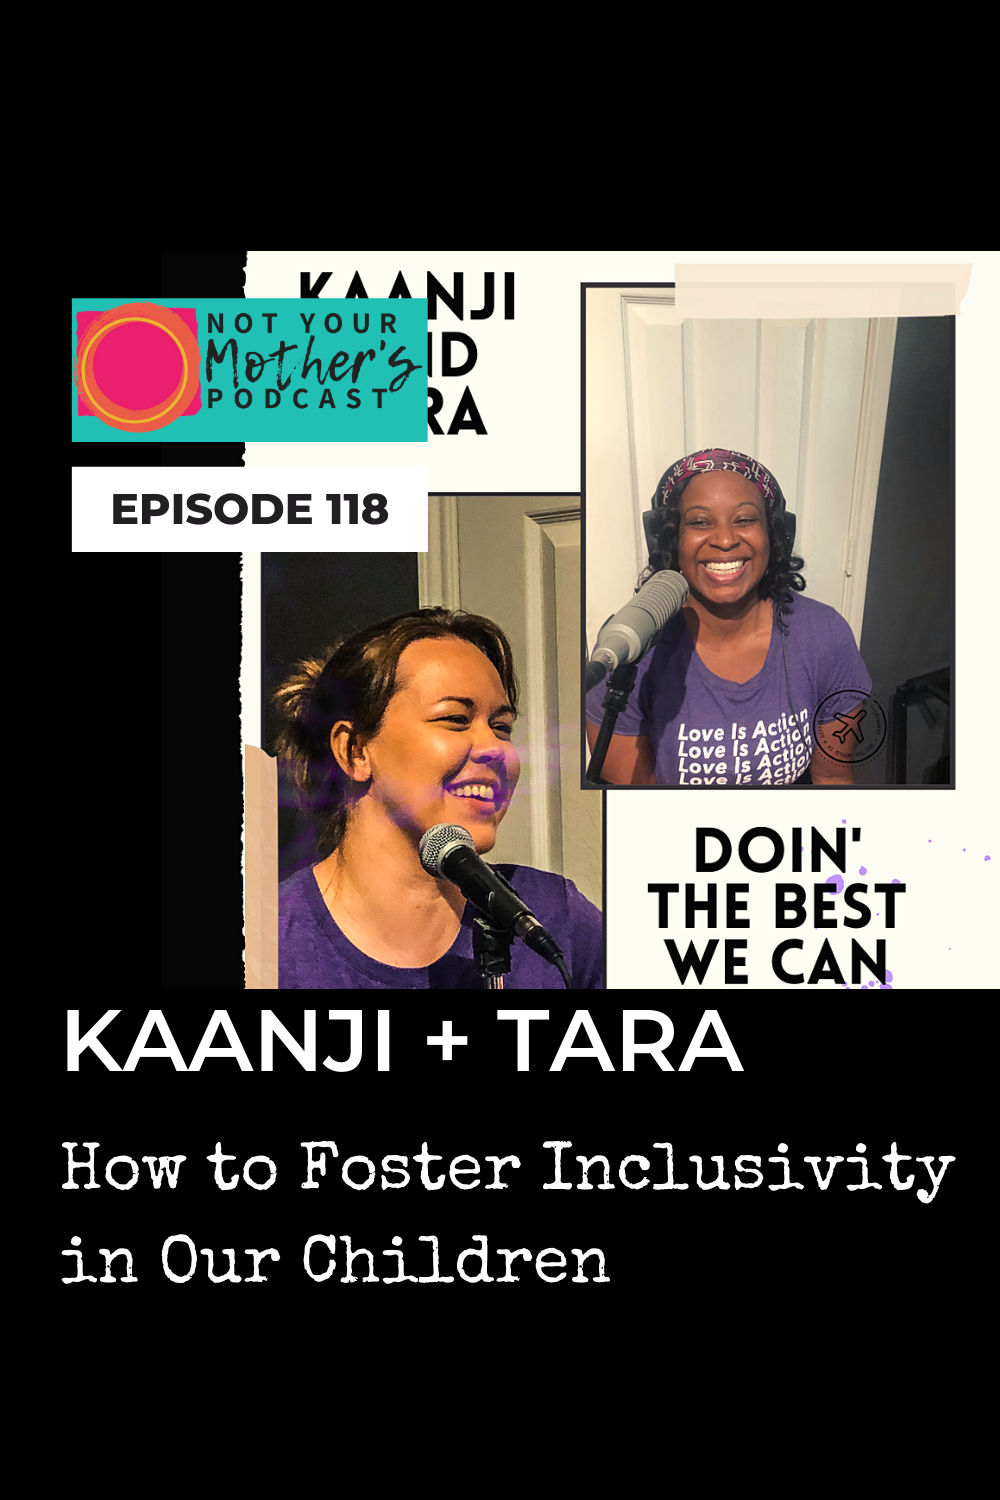 Ep. 118: How to Foster Inclusivity With Our Children with Kaanji and Tara PIN